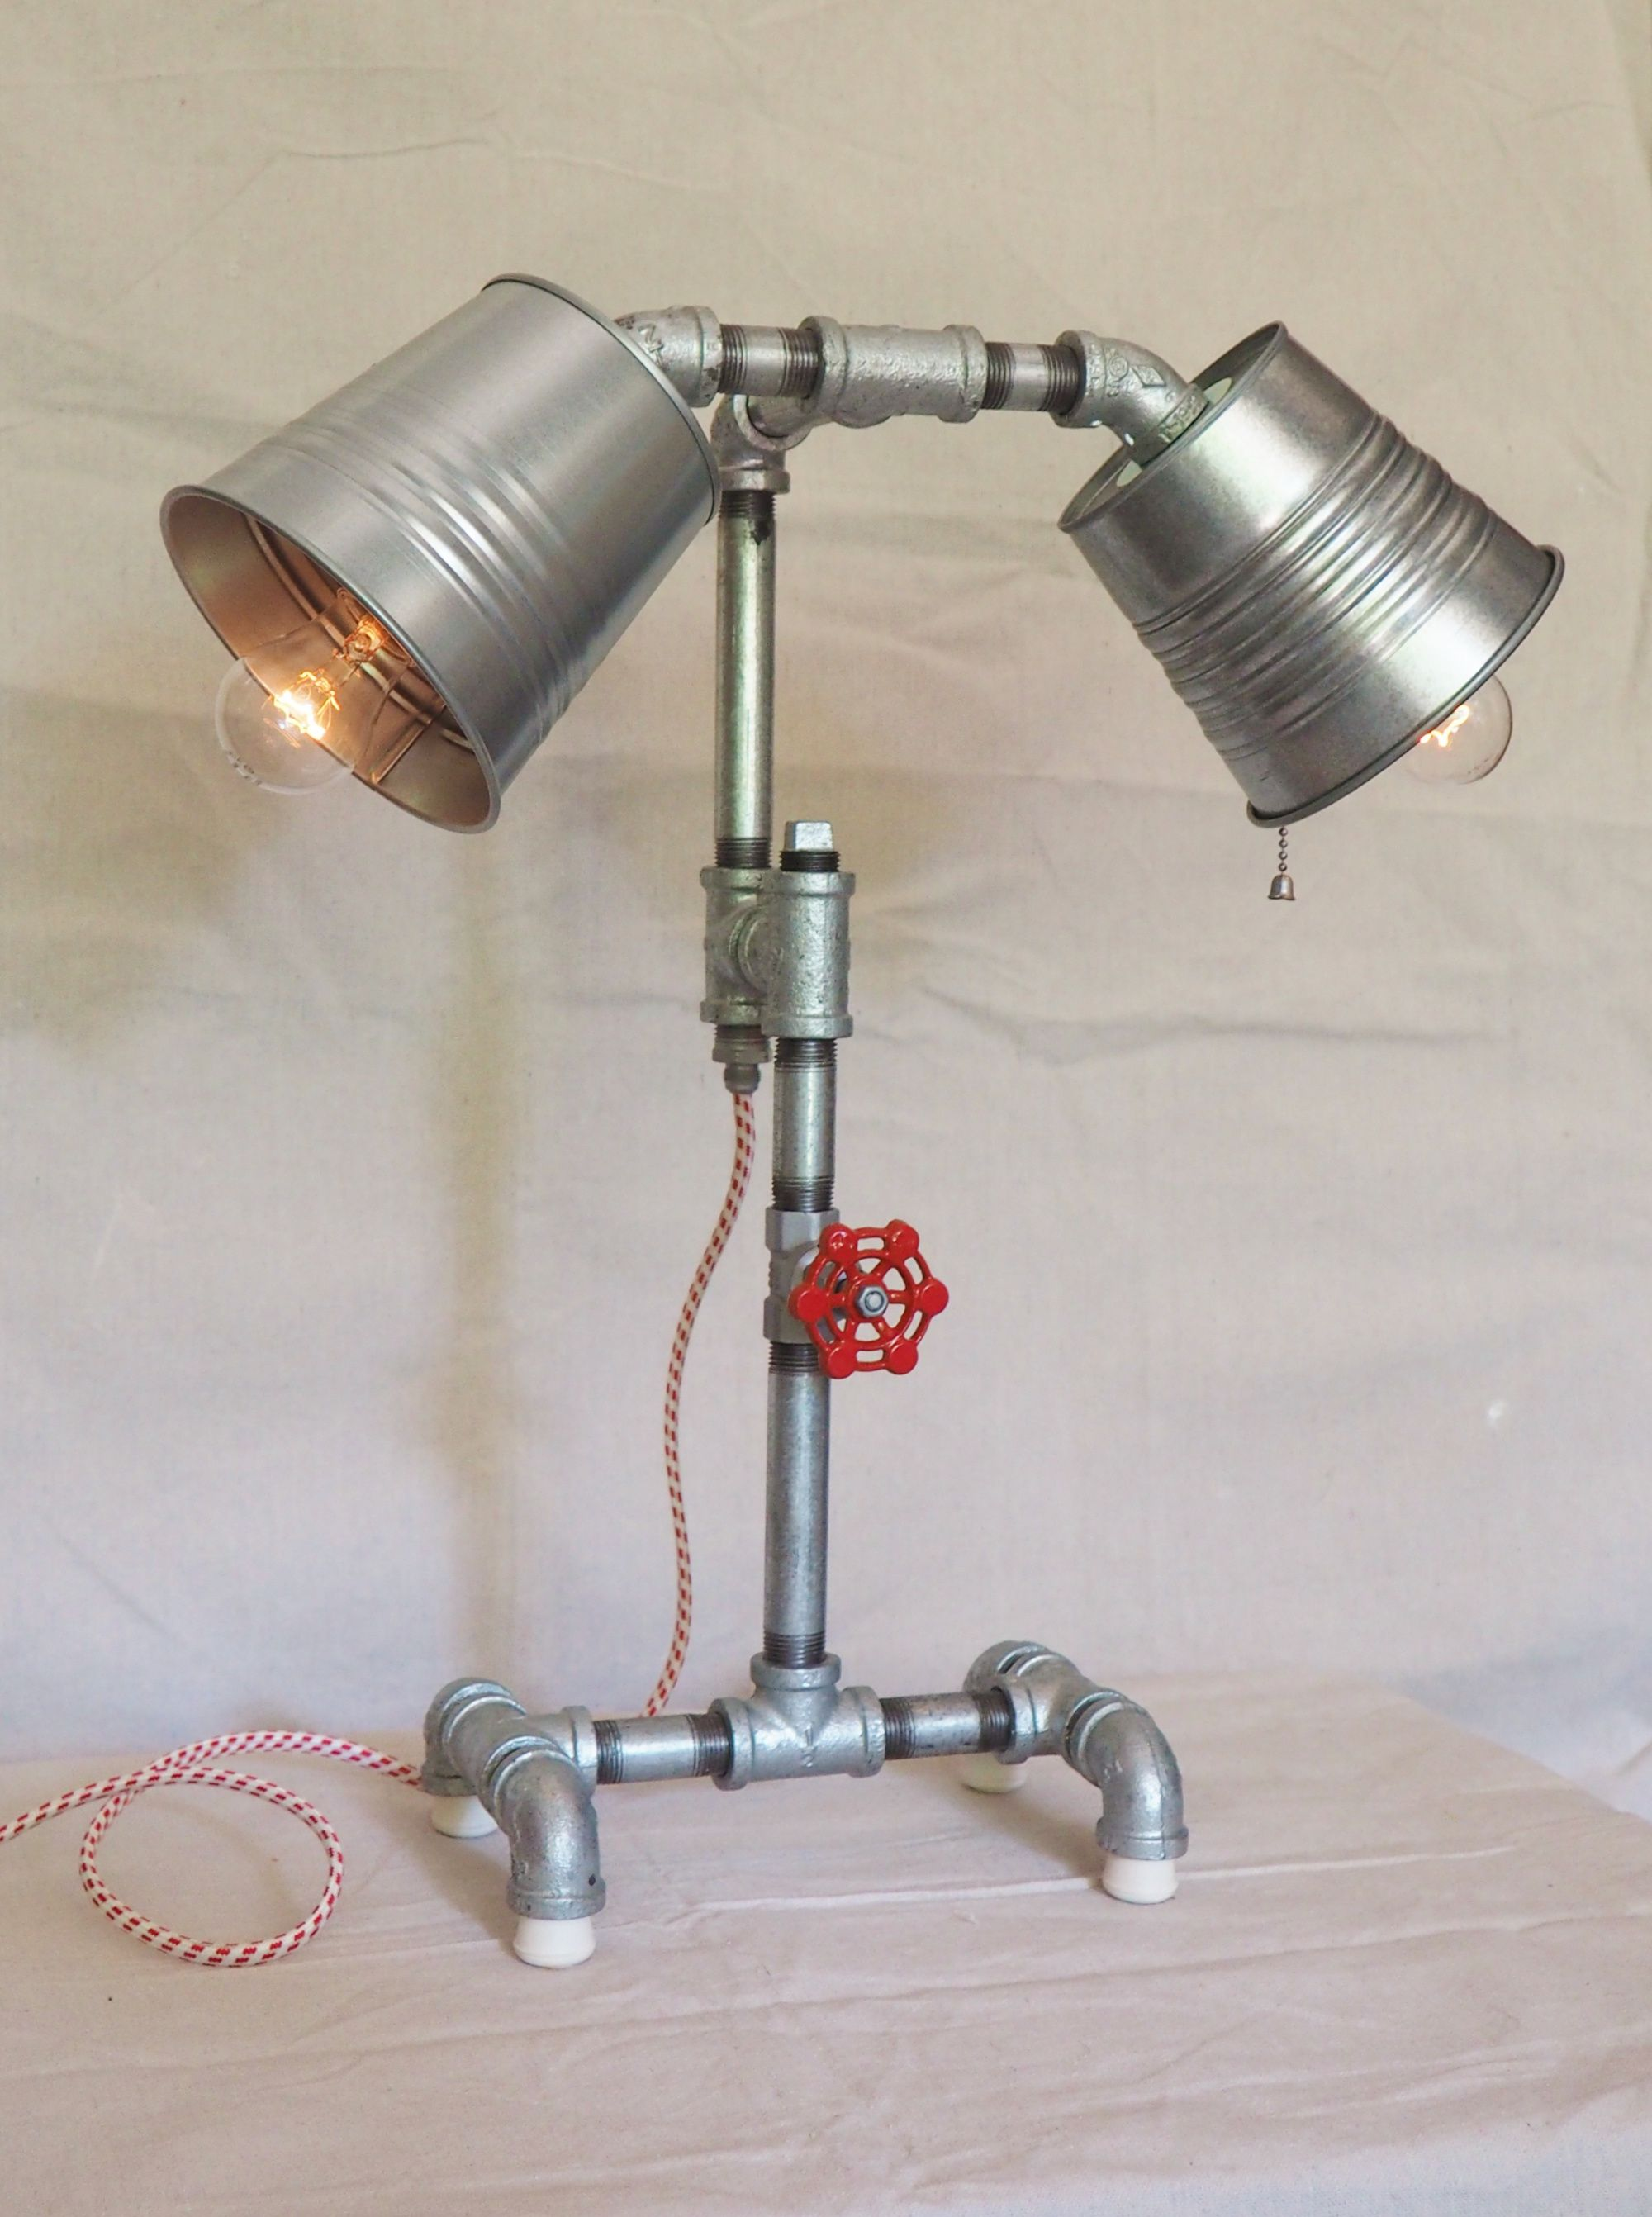 Handcrafted Industrial Pipe Goblet Lamp with nostolgic Lamp Shades in Hazelnut